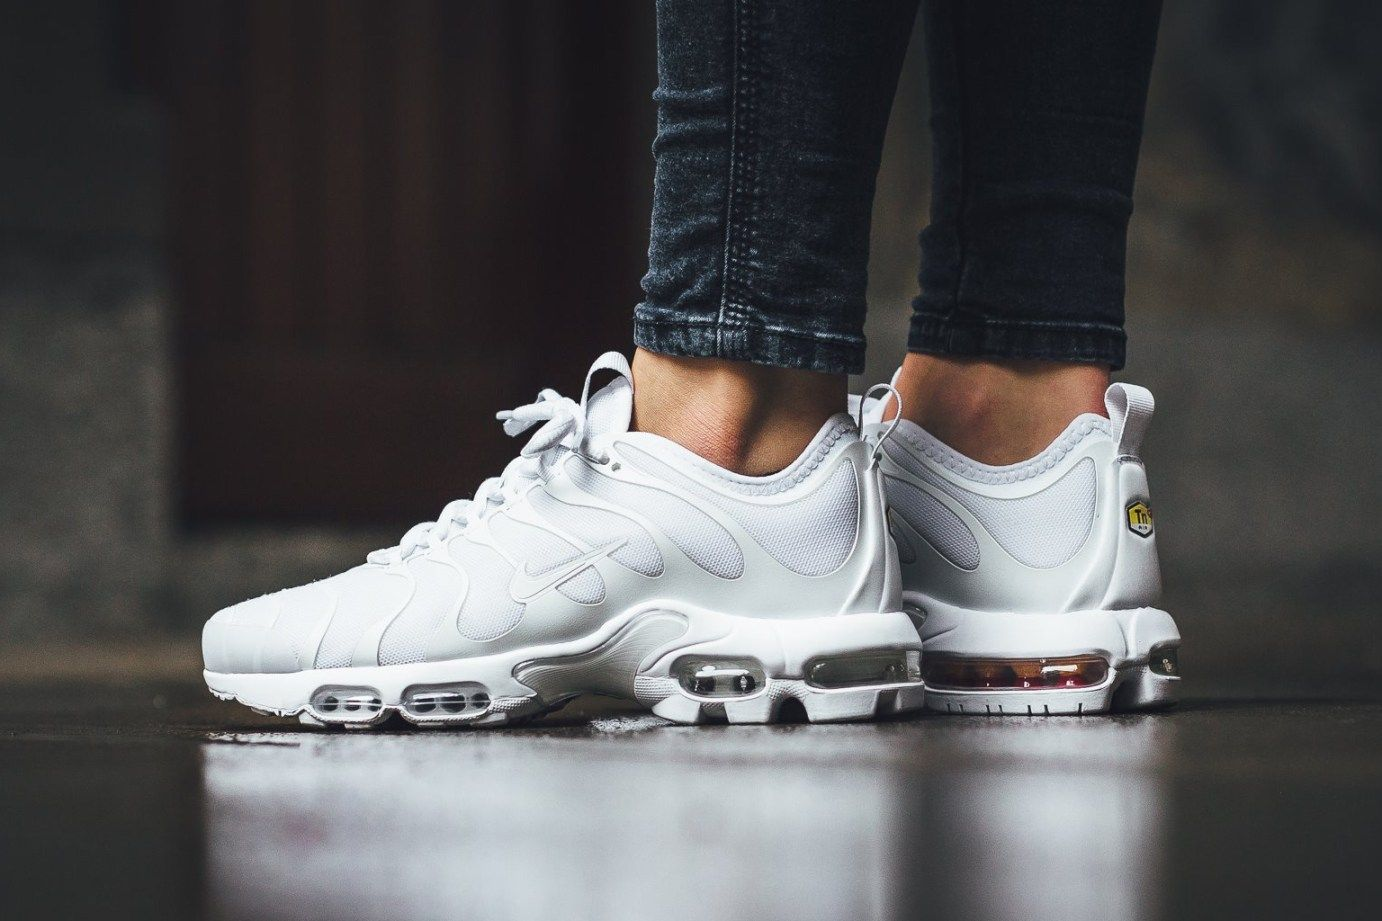 200 Inoreader Mustcop Air Max Plus Ultra White Nike Air Max Plus Nike Air Max Nike Women Fashion